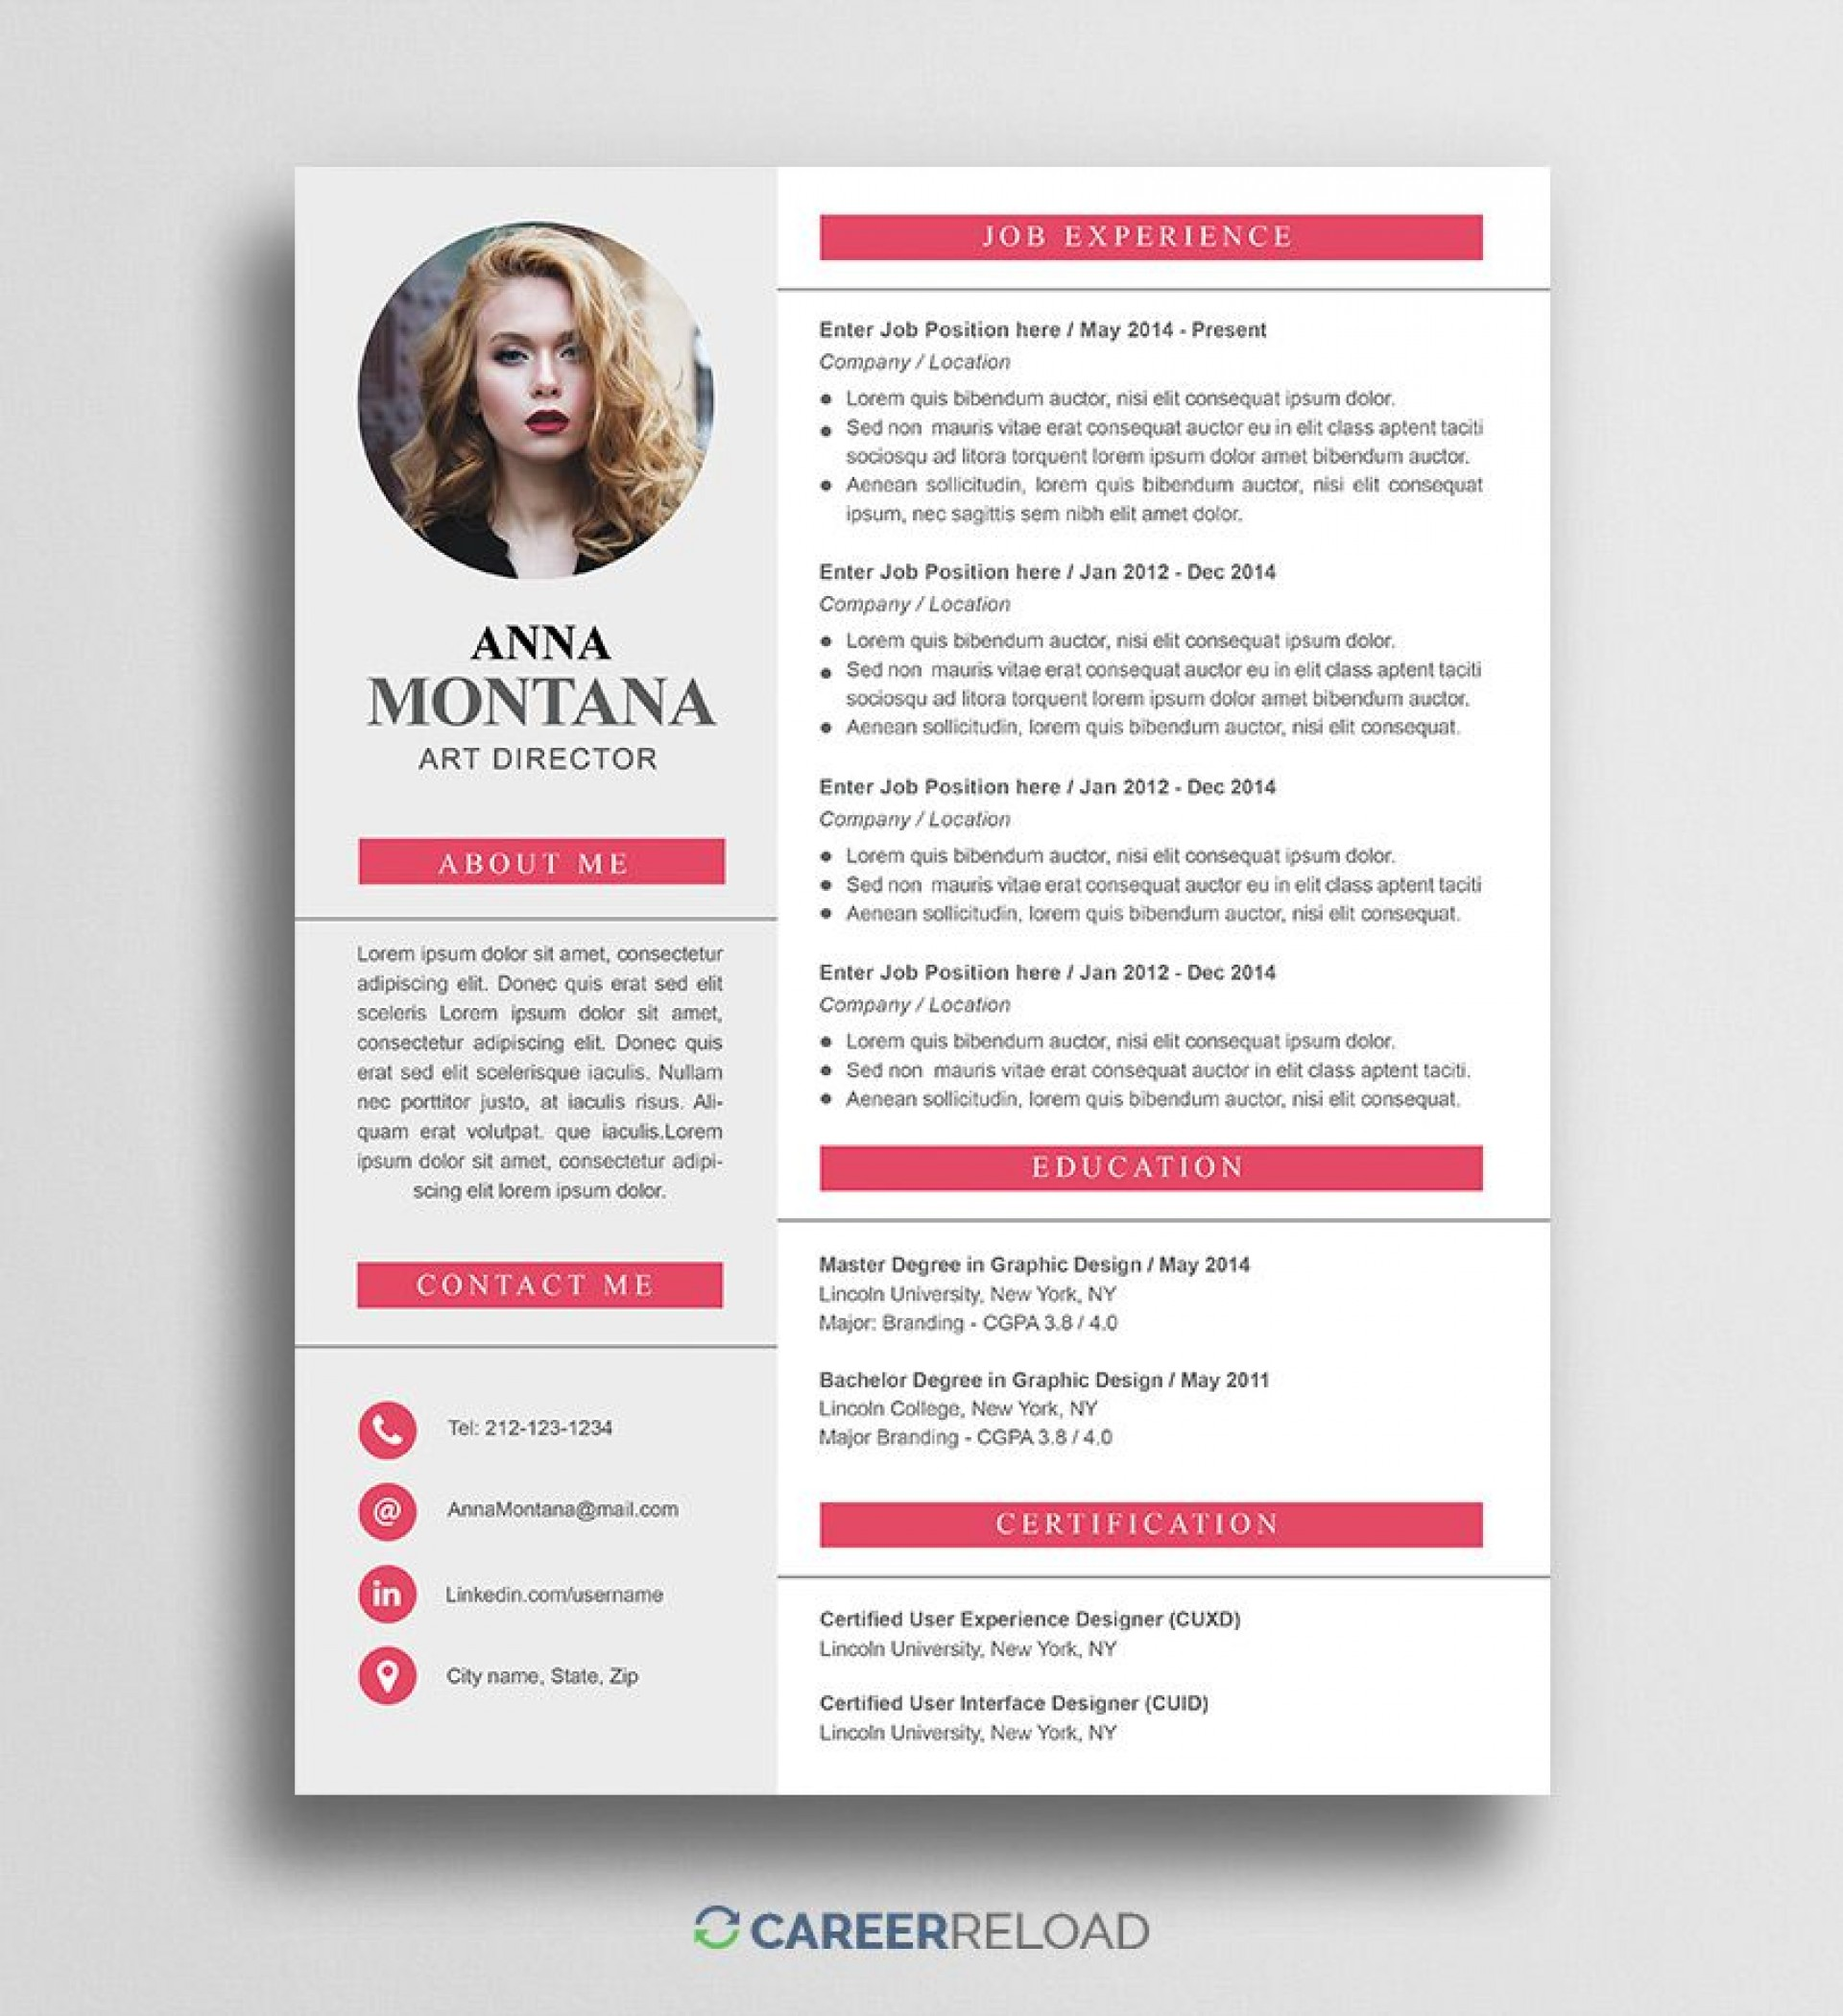 008 Imposing Psd Cv Template Free Inspiration  2018 Vector Photo And File Download Architect1920